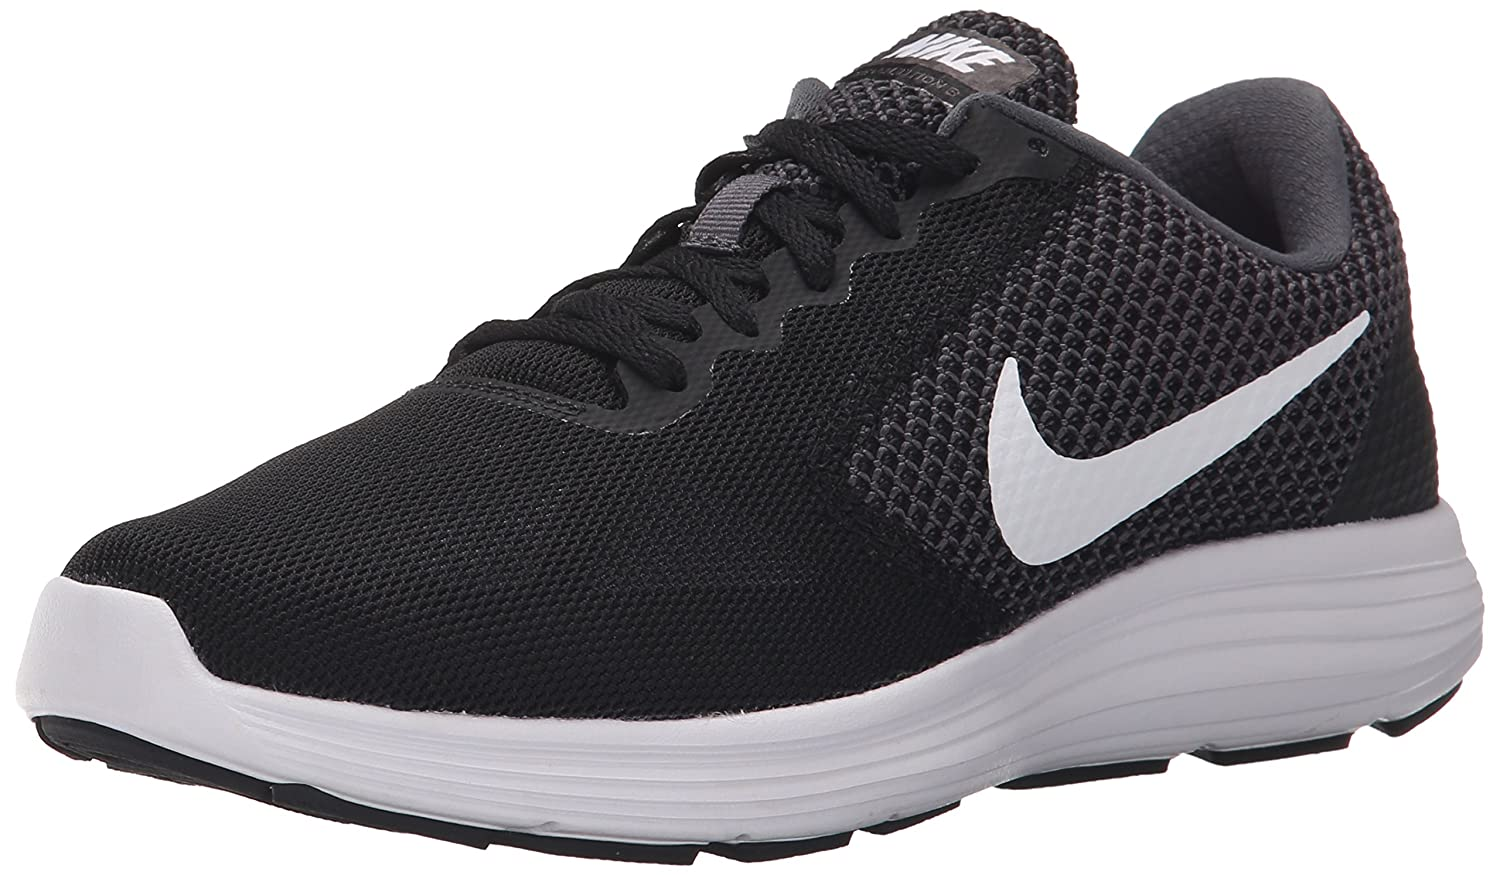 49c4e343f8 Amazon.com | NIKE Women's Revolution 3 Running Shoe | Running